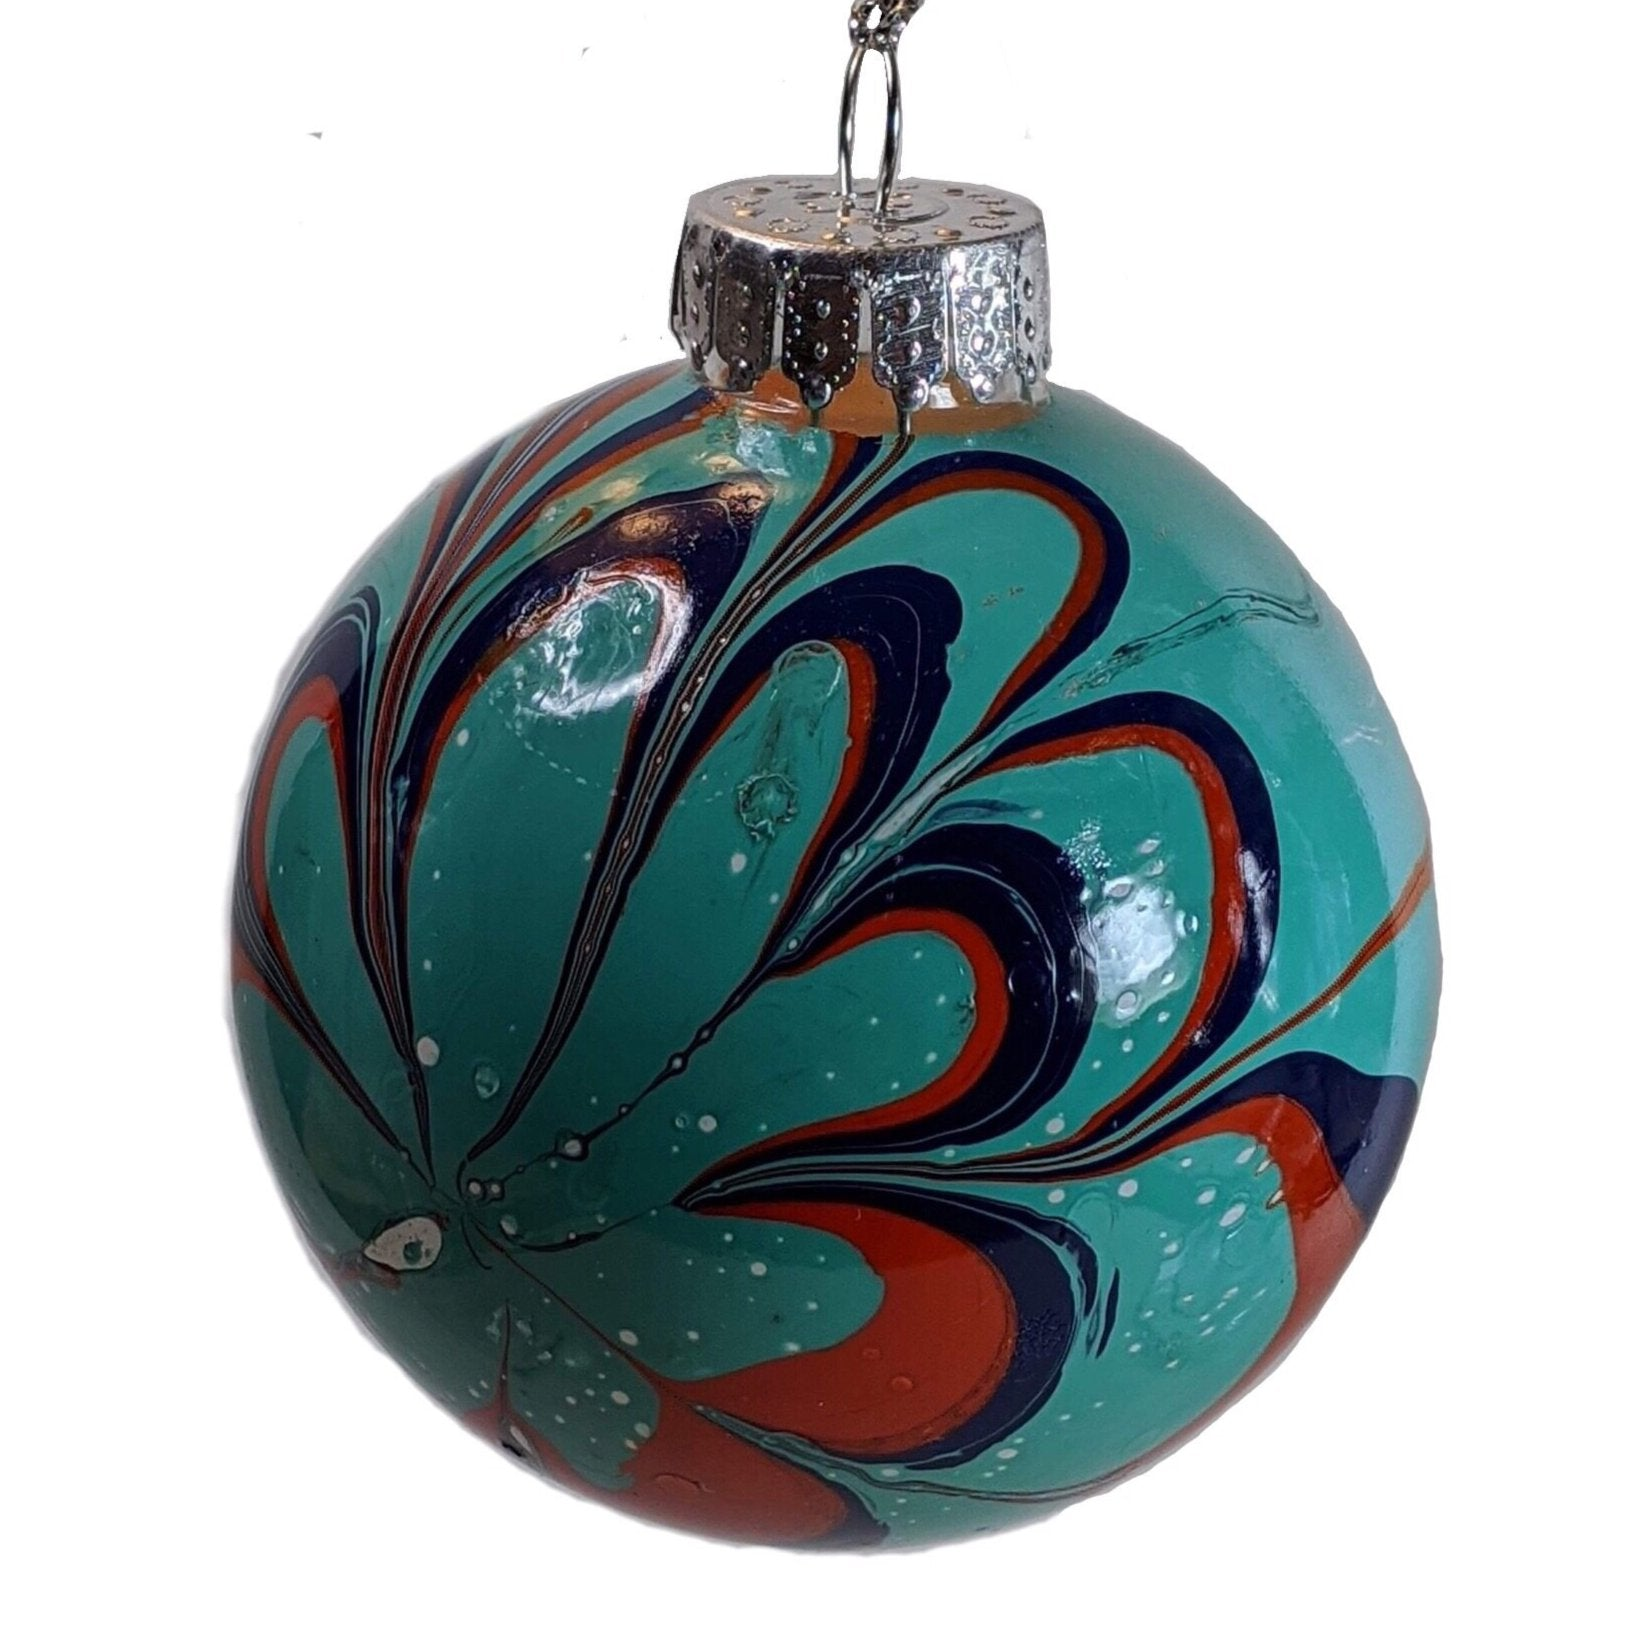 Marbled Glass Ornament, Chipper Flower-Fullamoon Designs